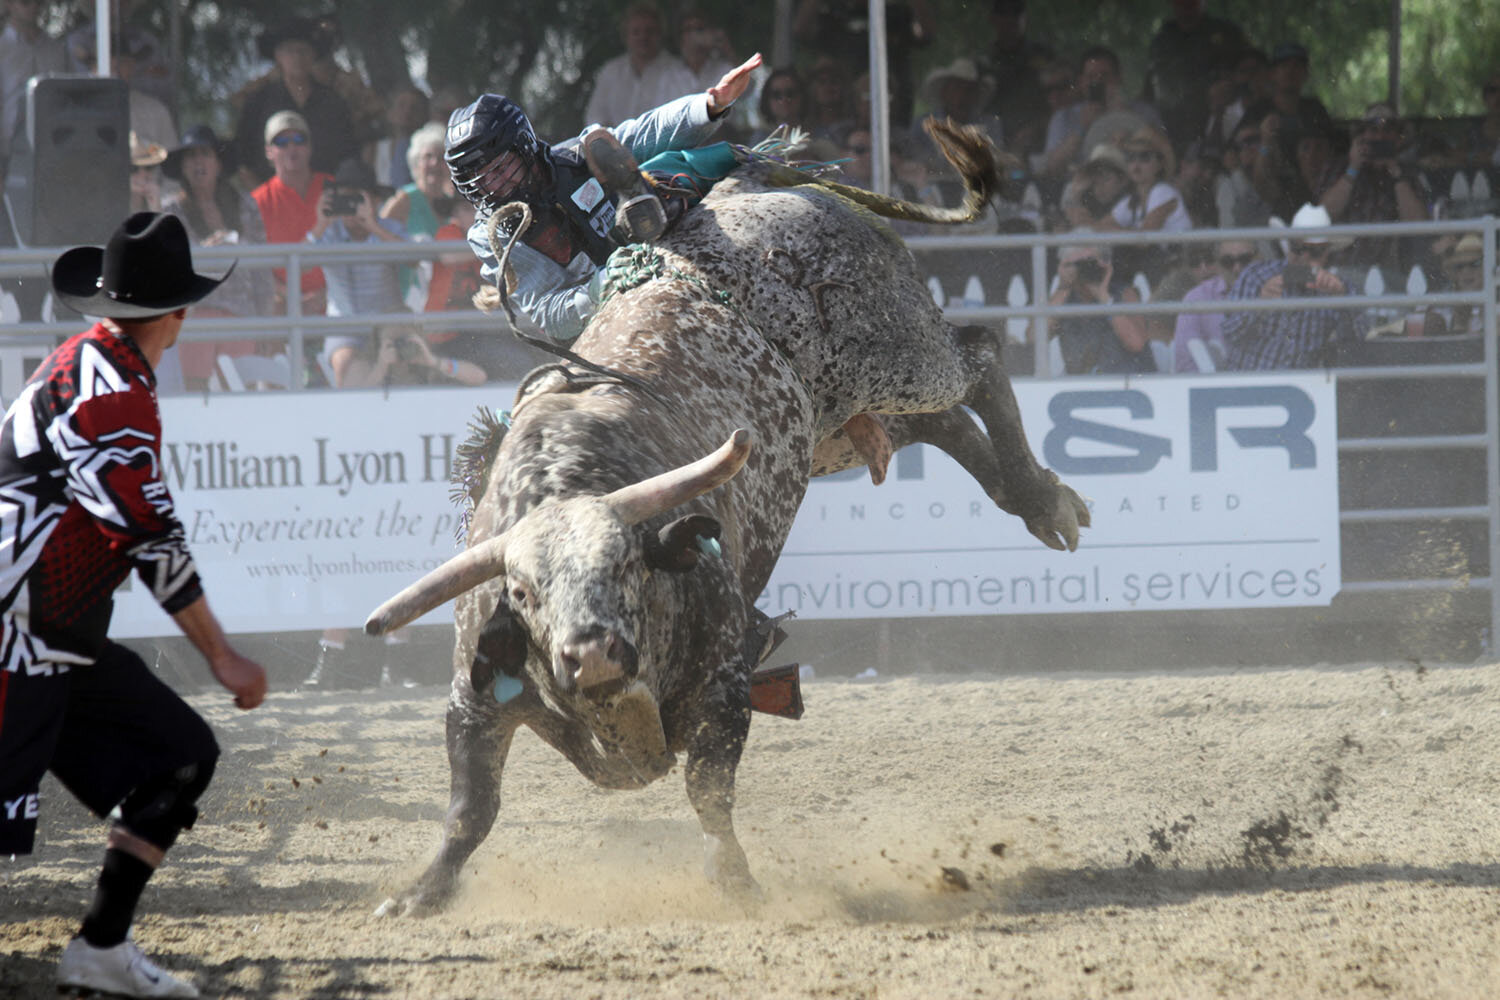 Cowboys Compete in Annual RMV Rodeo - Some of the best cowboys from across the country rolled into San Juan Capistrano this past weekend to take part in the Rancho Mission Viejo Rodeo.